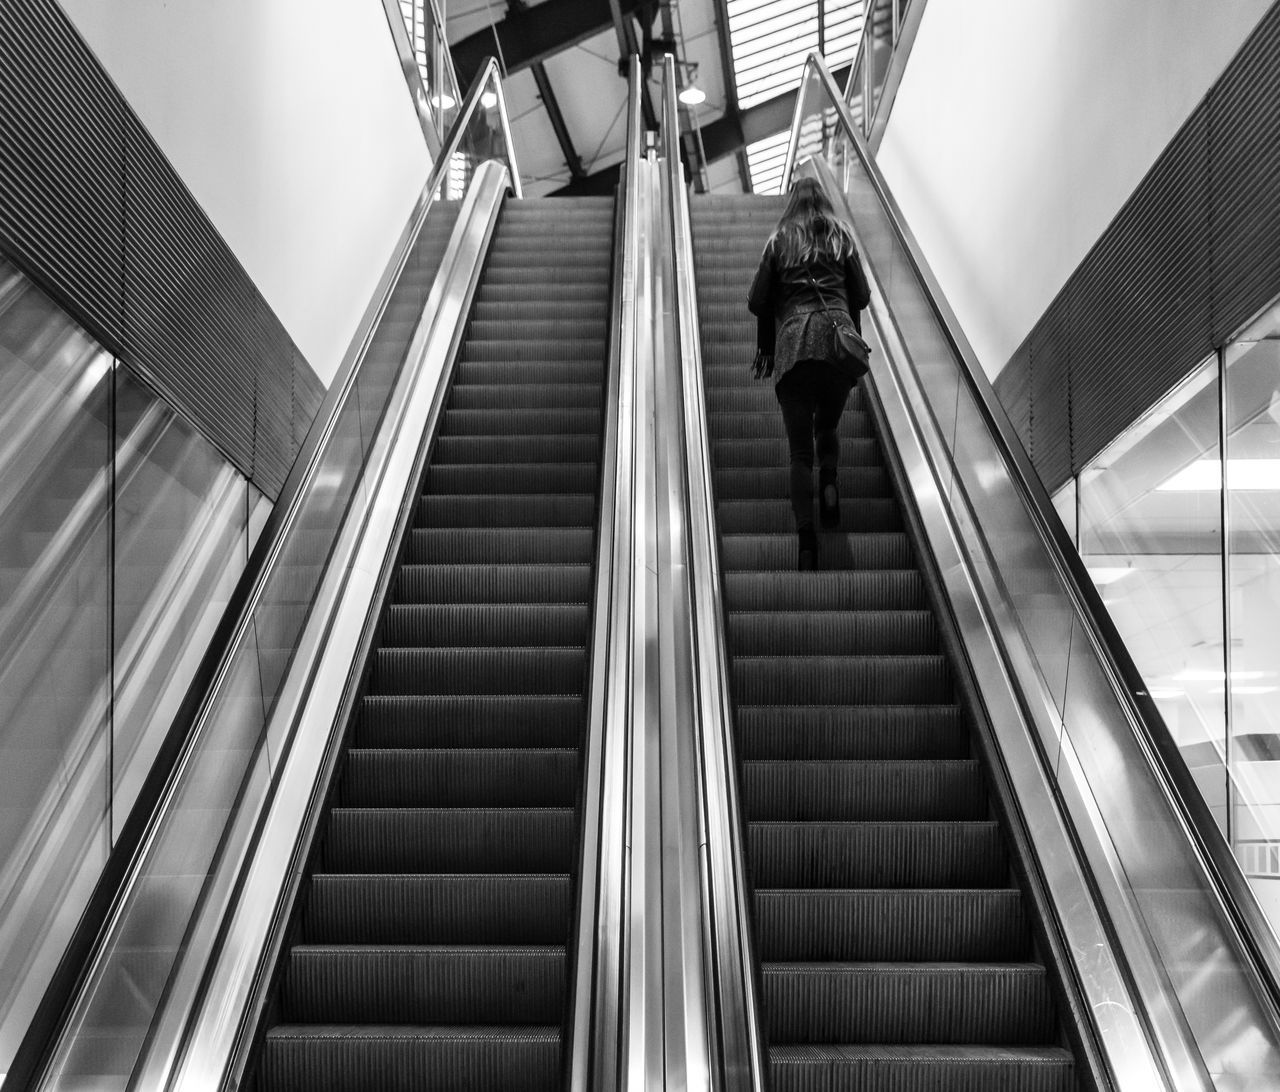 Architecture Black & White Black And White Built Structure Day Escalator Low Angle View Modern No People One Person Outdoors Rolltreppe Staircase Steps